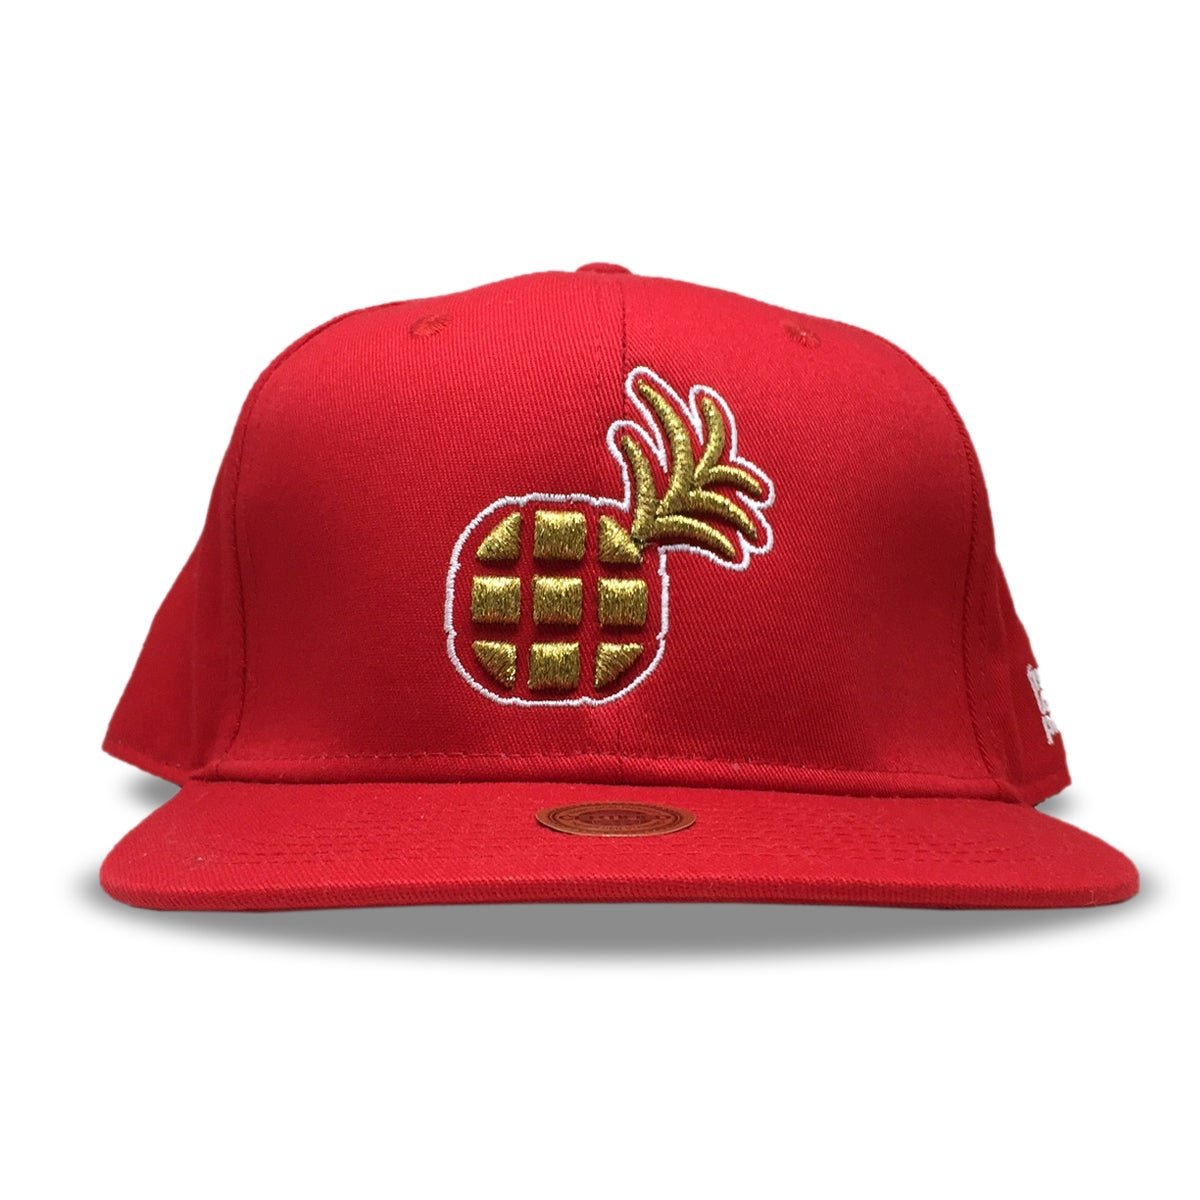 Image of Maui Gold Snapback